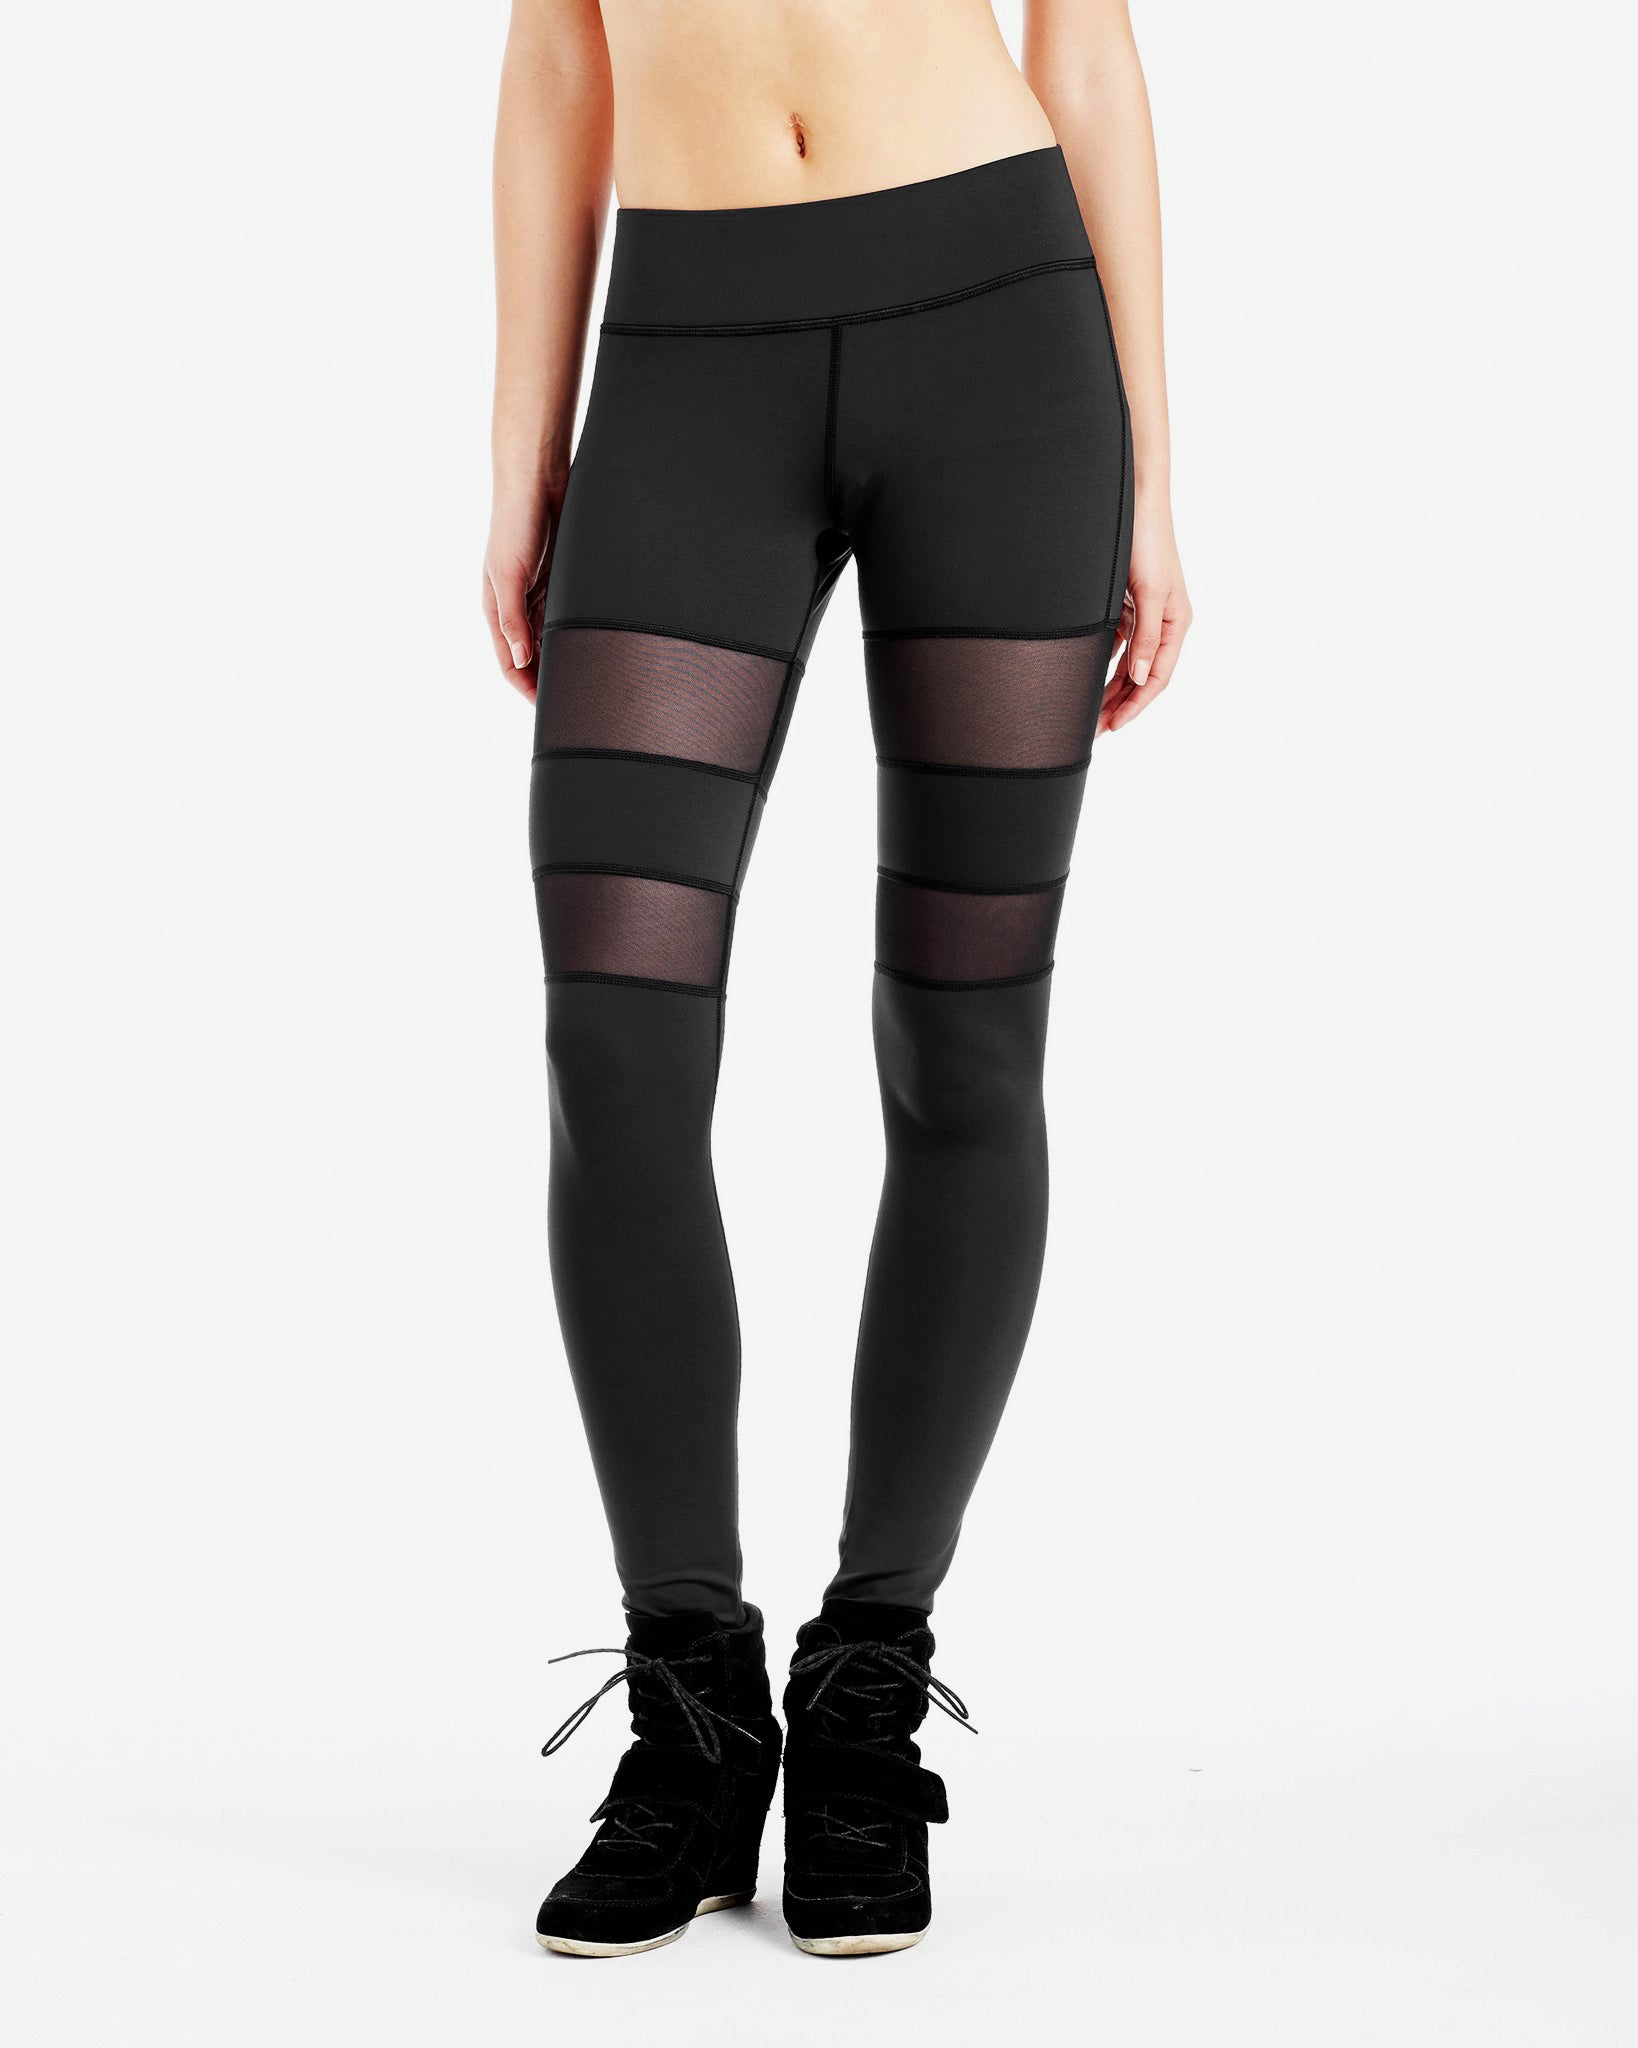 psyloque-legging-black